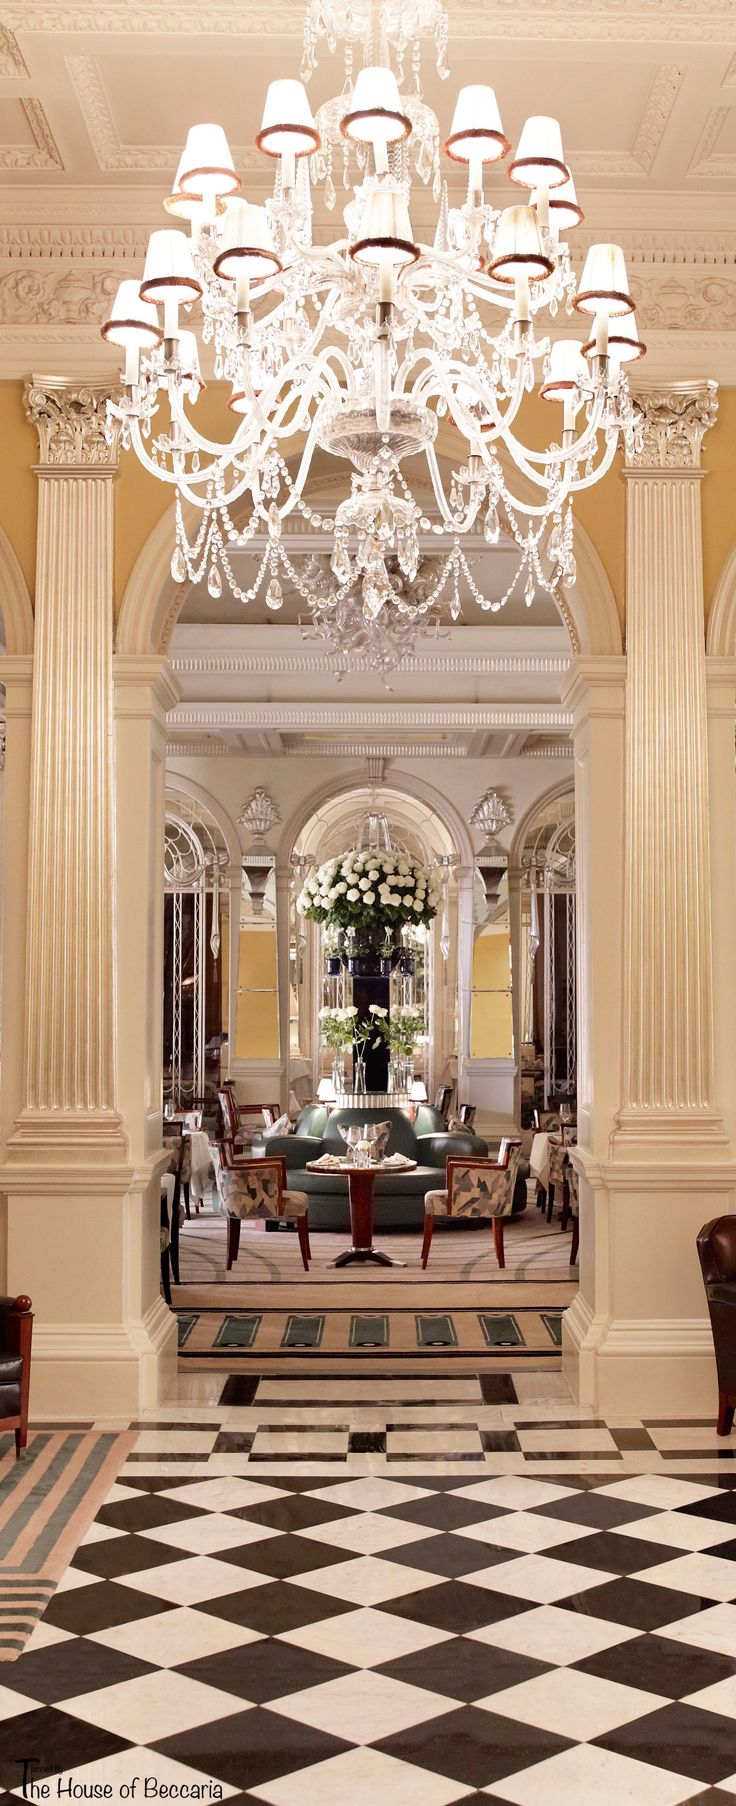 Claridges is a 5 star iconic art deco luxury hotel in london dating back